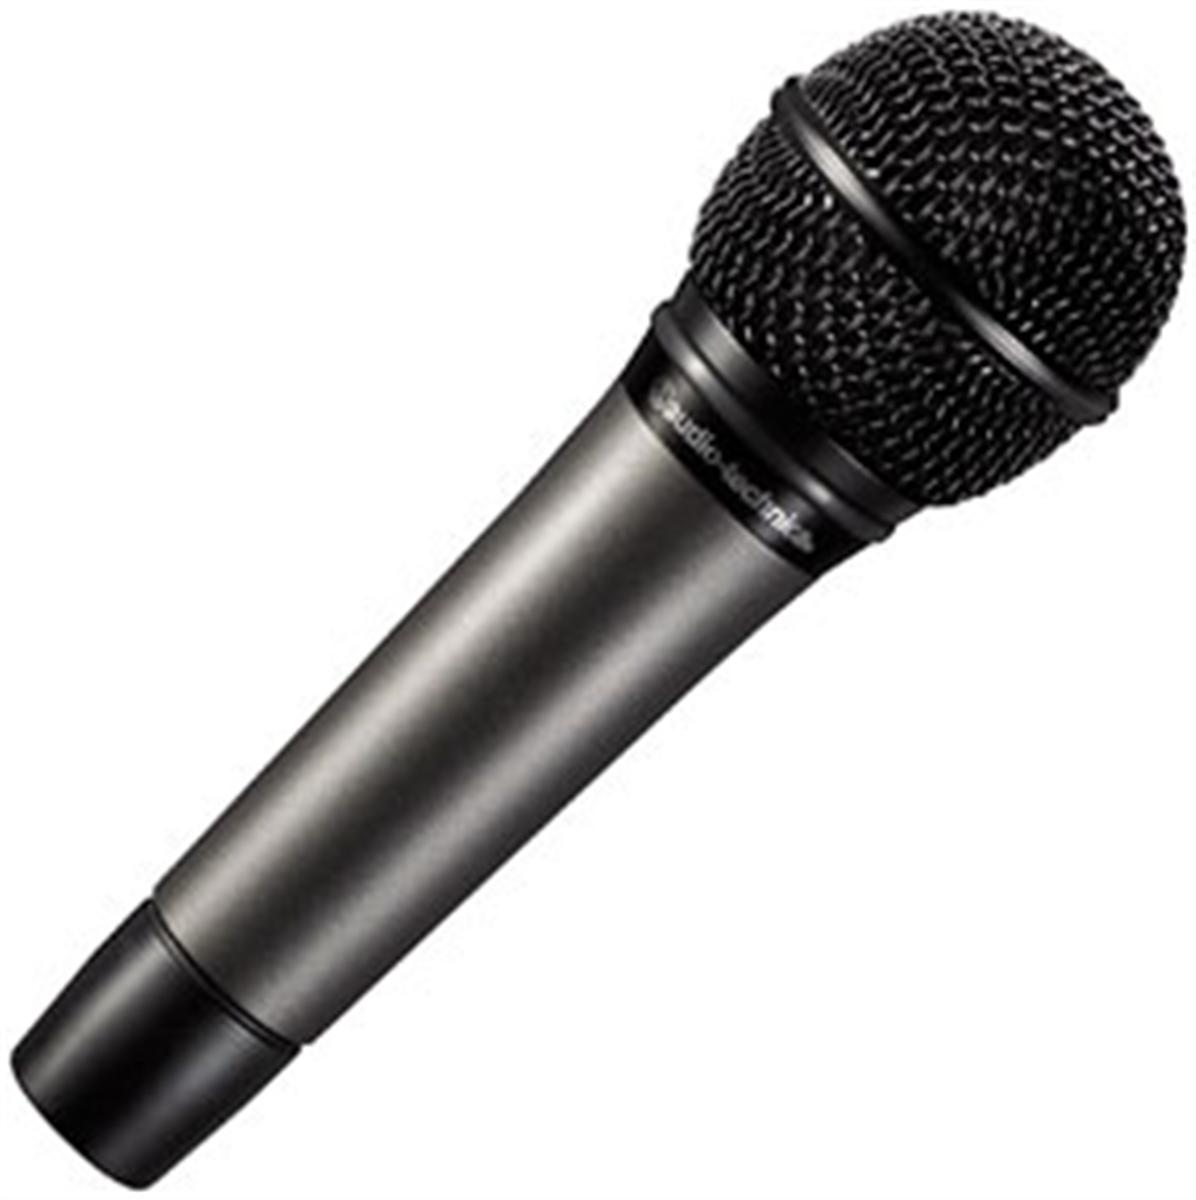 microphone clipart black and white clipart panda free